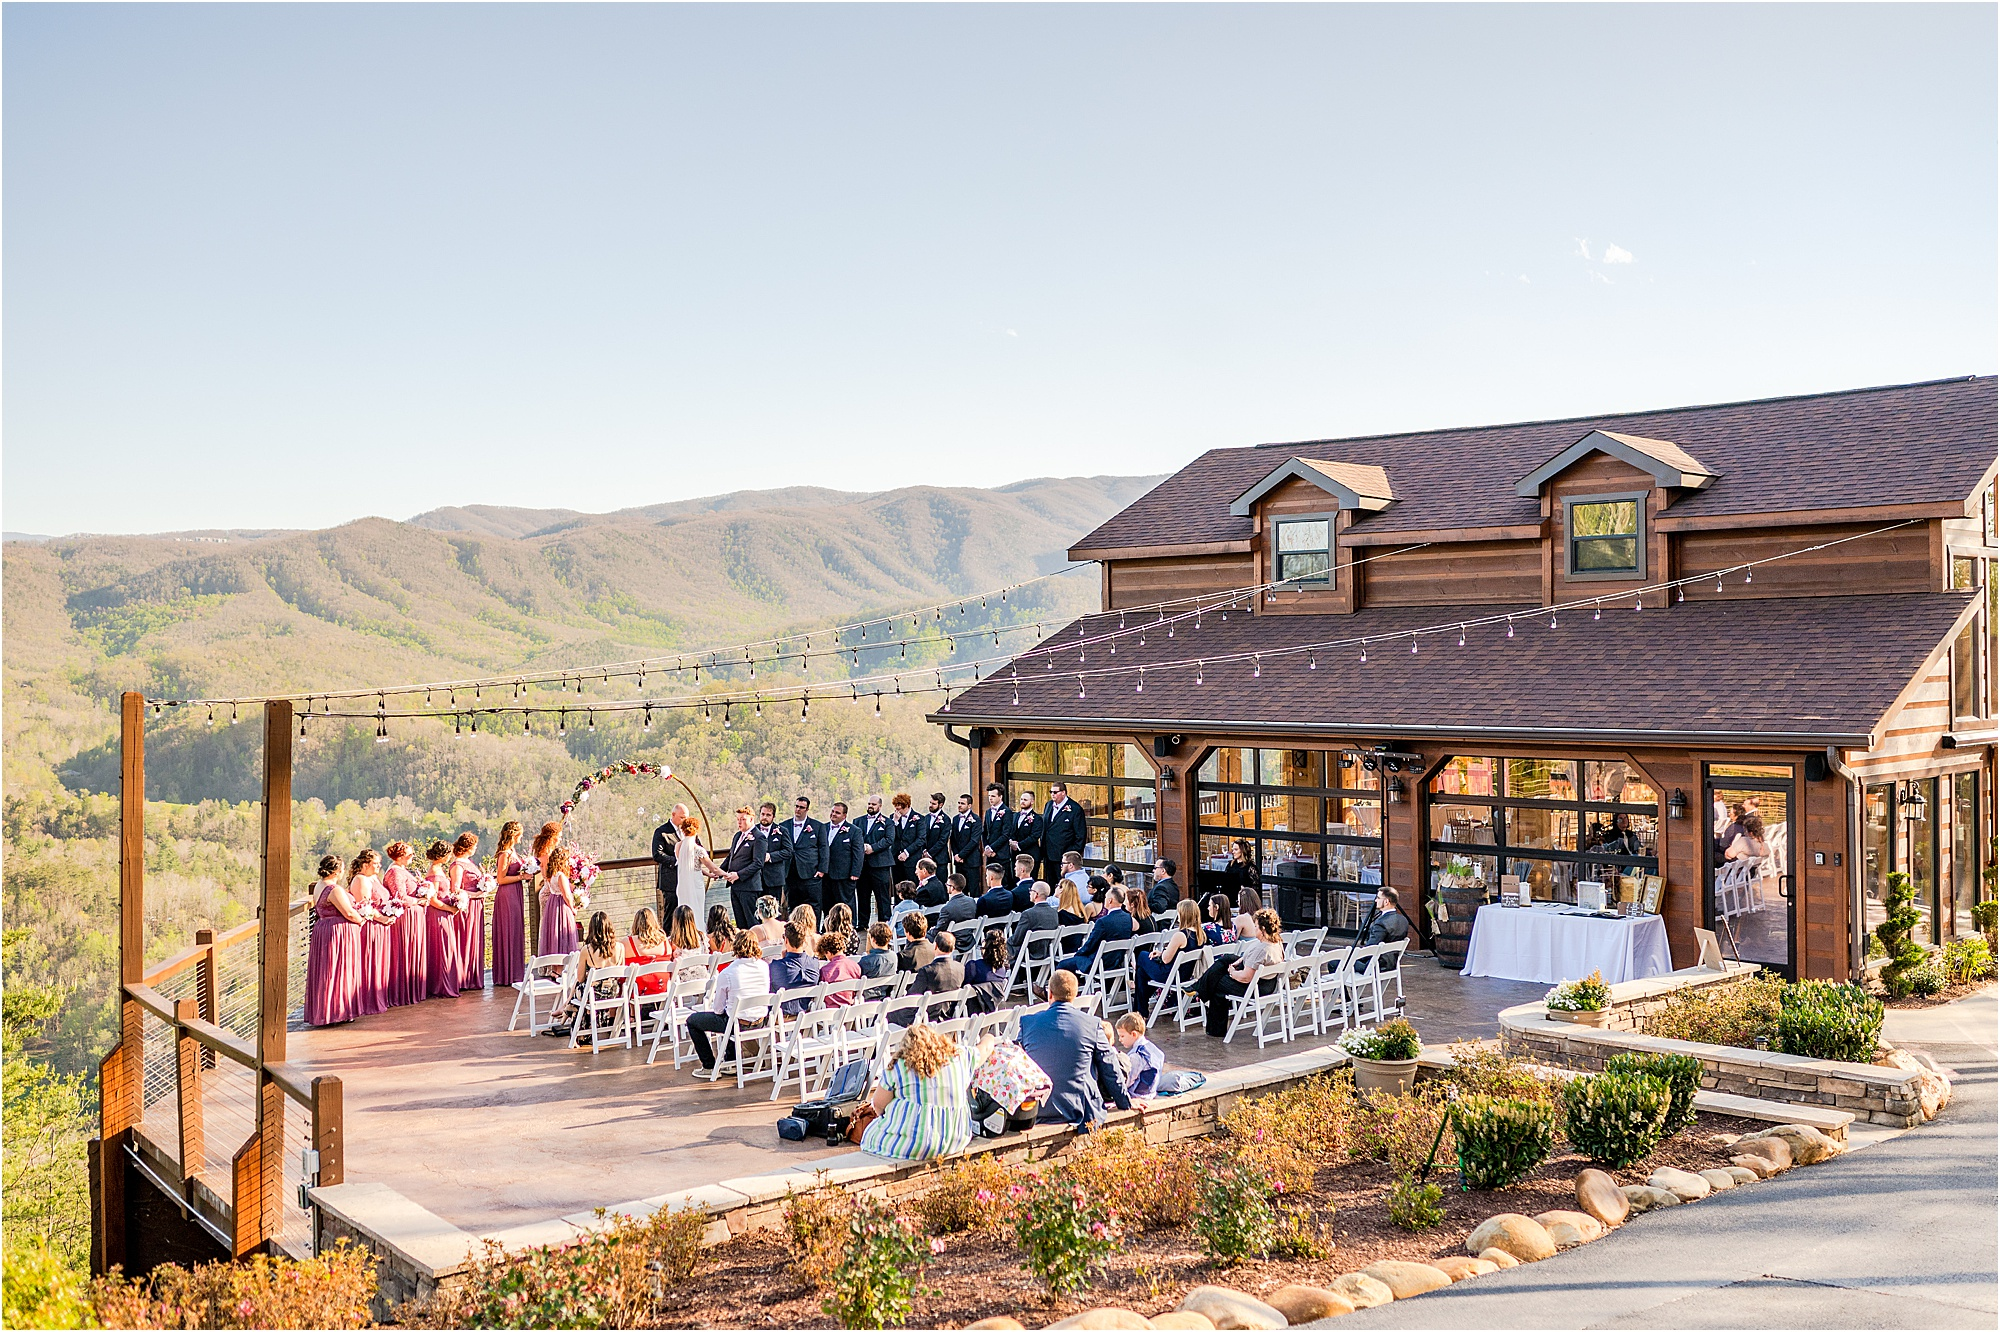 wedding ceremony overlooking The Great Smoky Mountains National Park